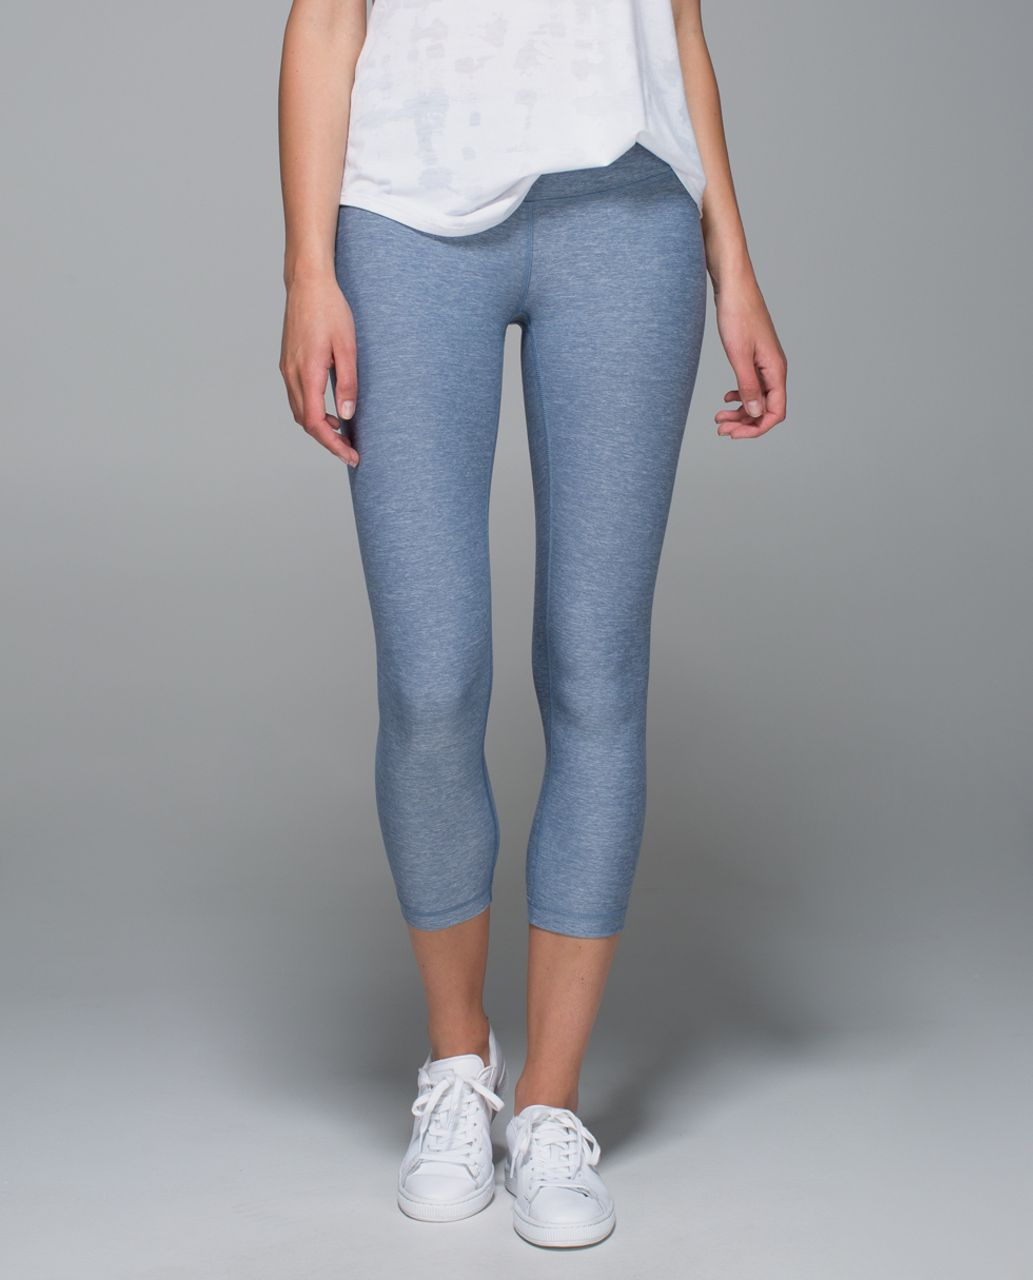 Lululemon Wunder Under Crop II - Heathered Blue Denim